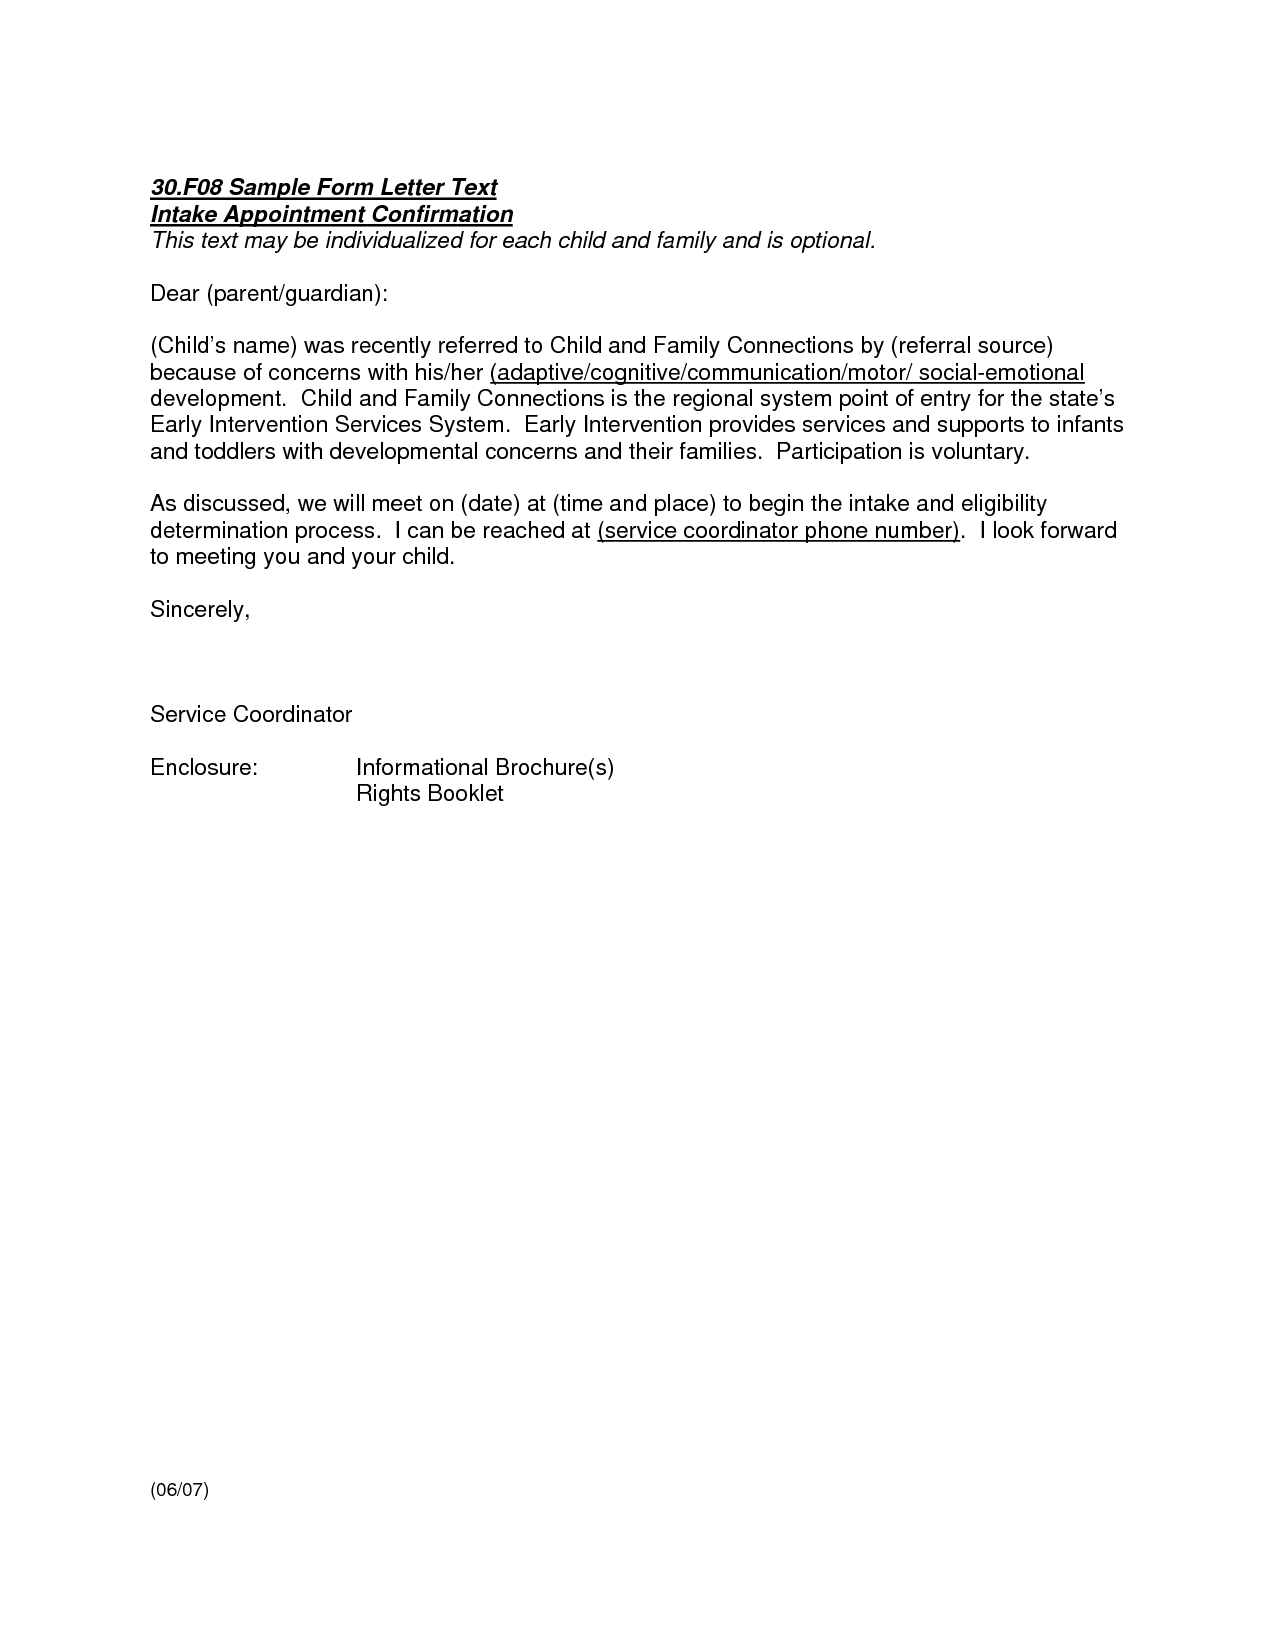 Appointment Confirmation Email Sample Meeting Employee Letter